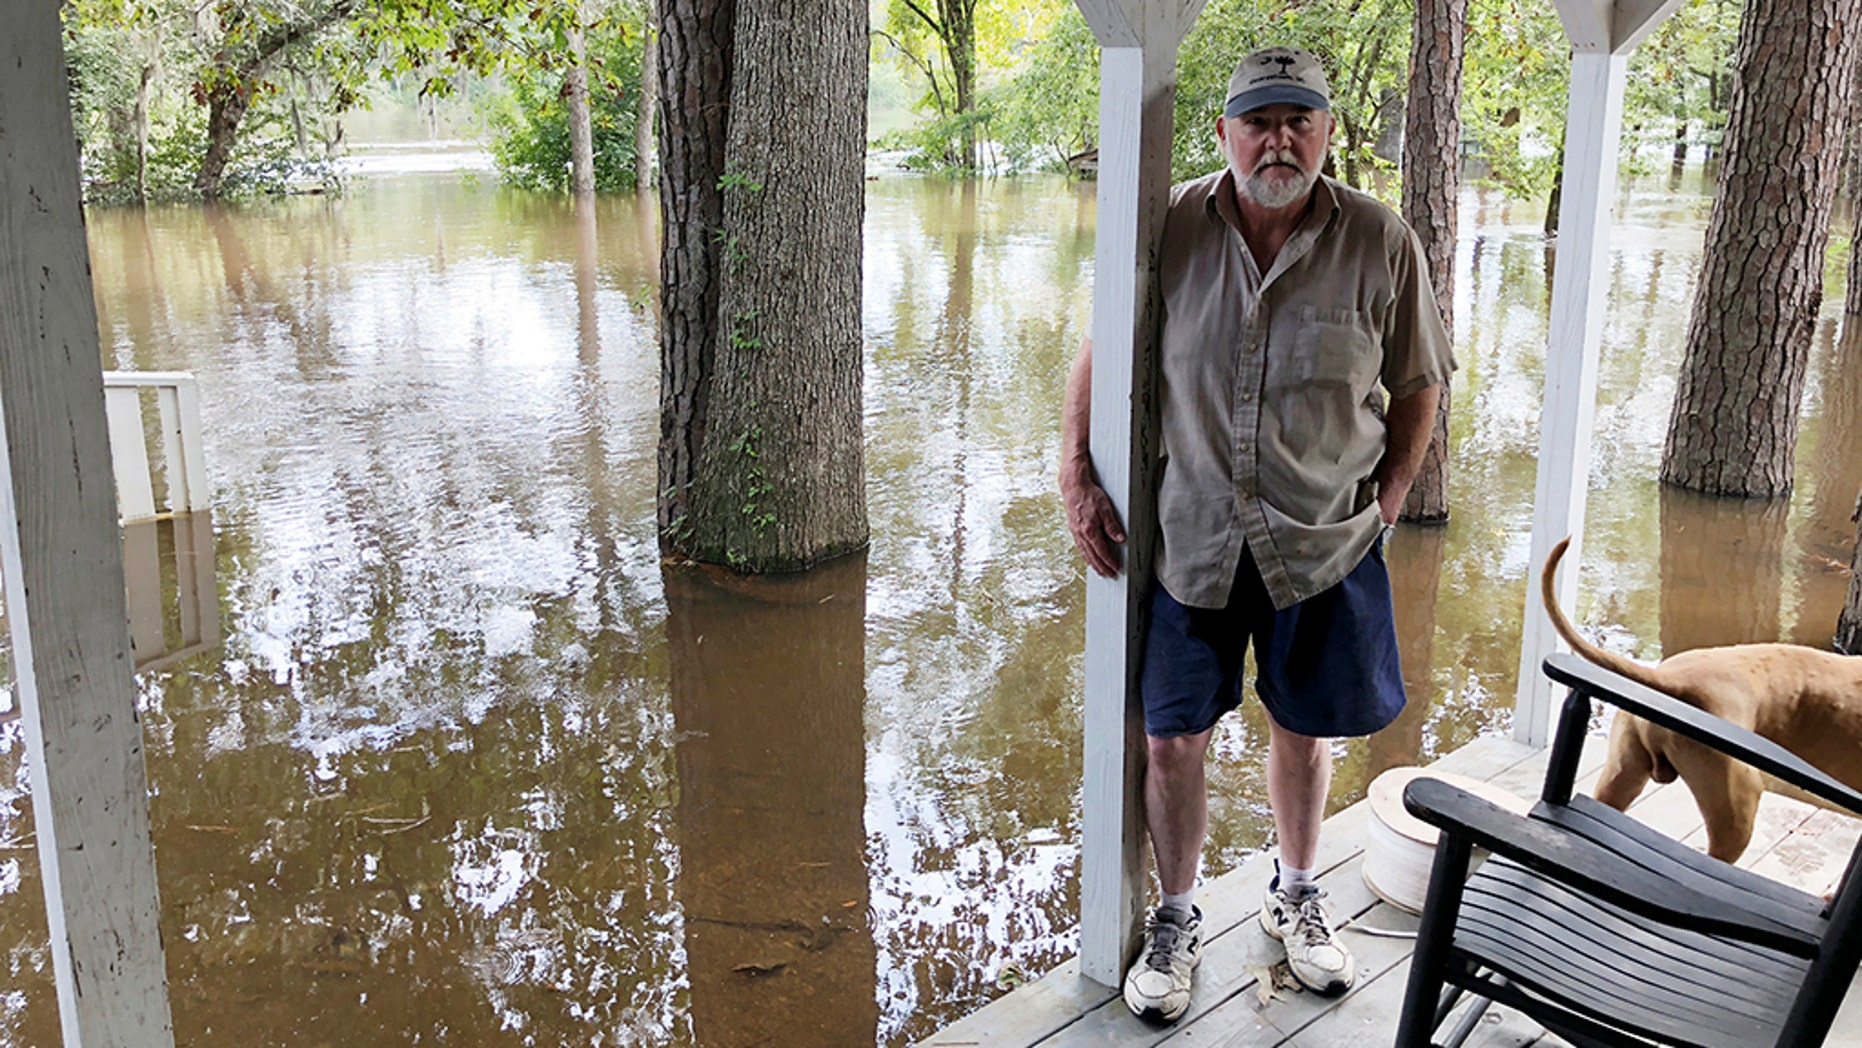 The church of Pastor Willie Lowrimore of The Fellowship With Jesus Ministries is on the bank of the Waccamaw River, which has already risen above its record crest and is expected to keep rising for several days, forcing thousands of evacuations in the aftermath of Hurricane Florence.